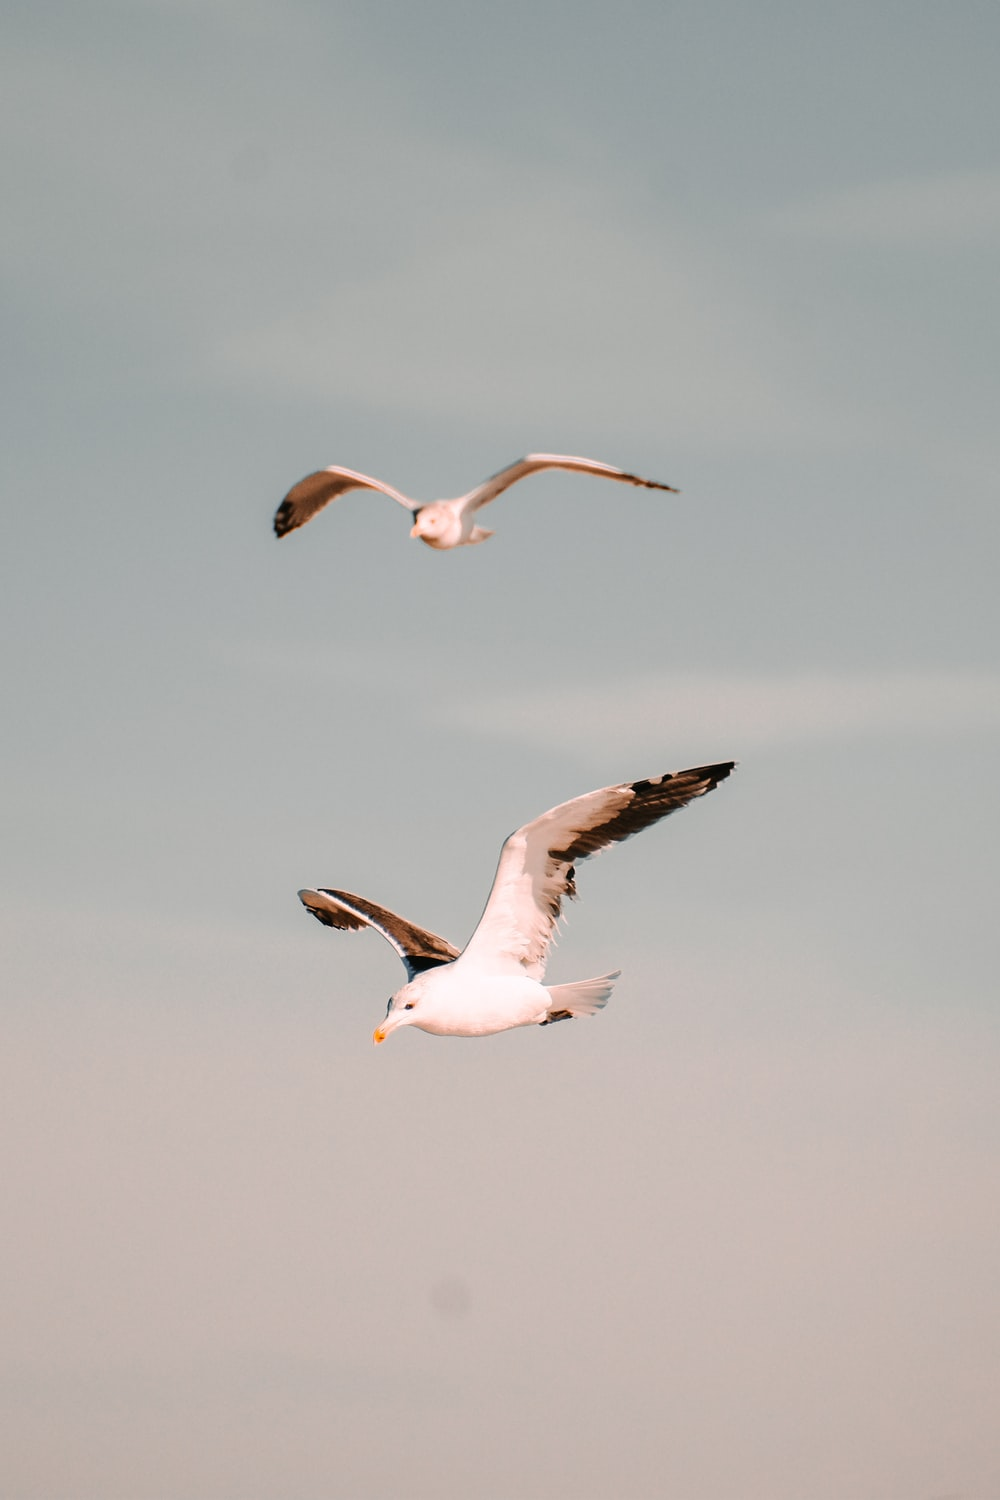 white and black birds flying under white clouds during daytime